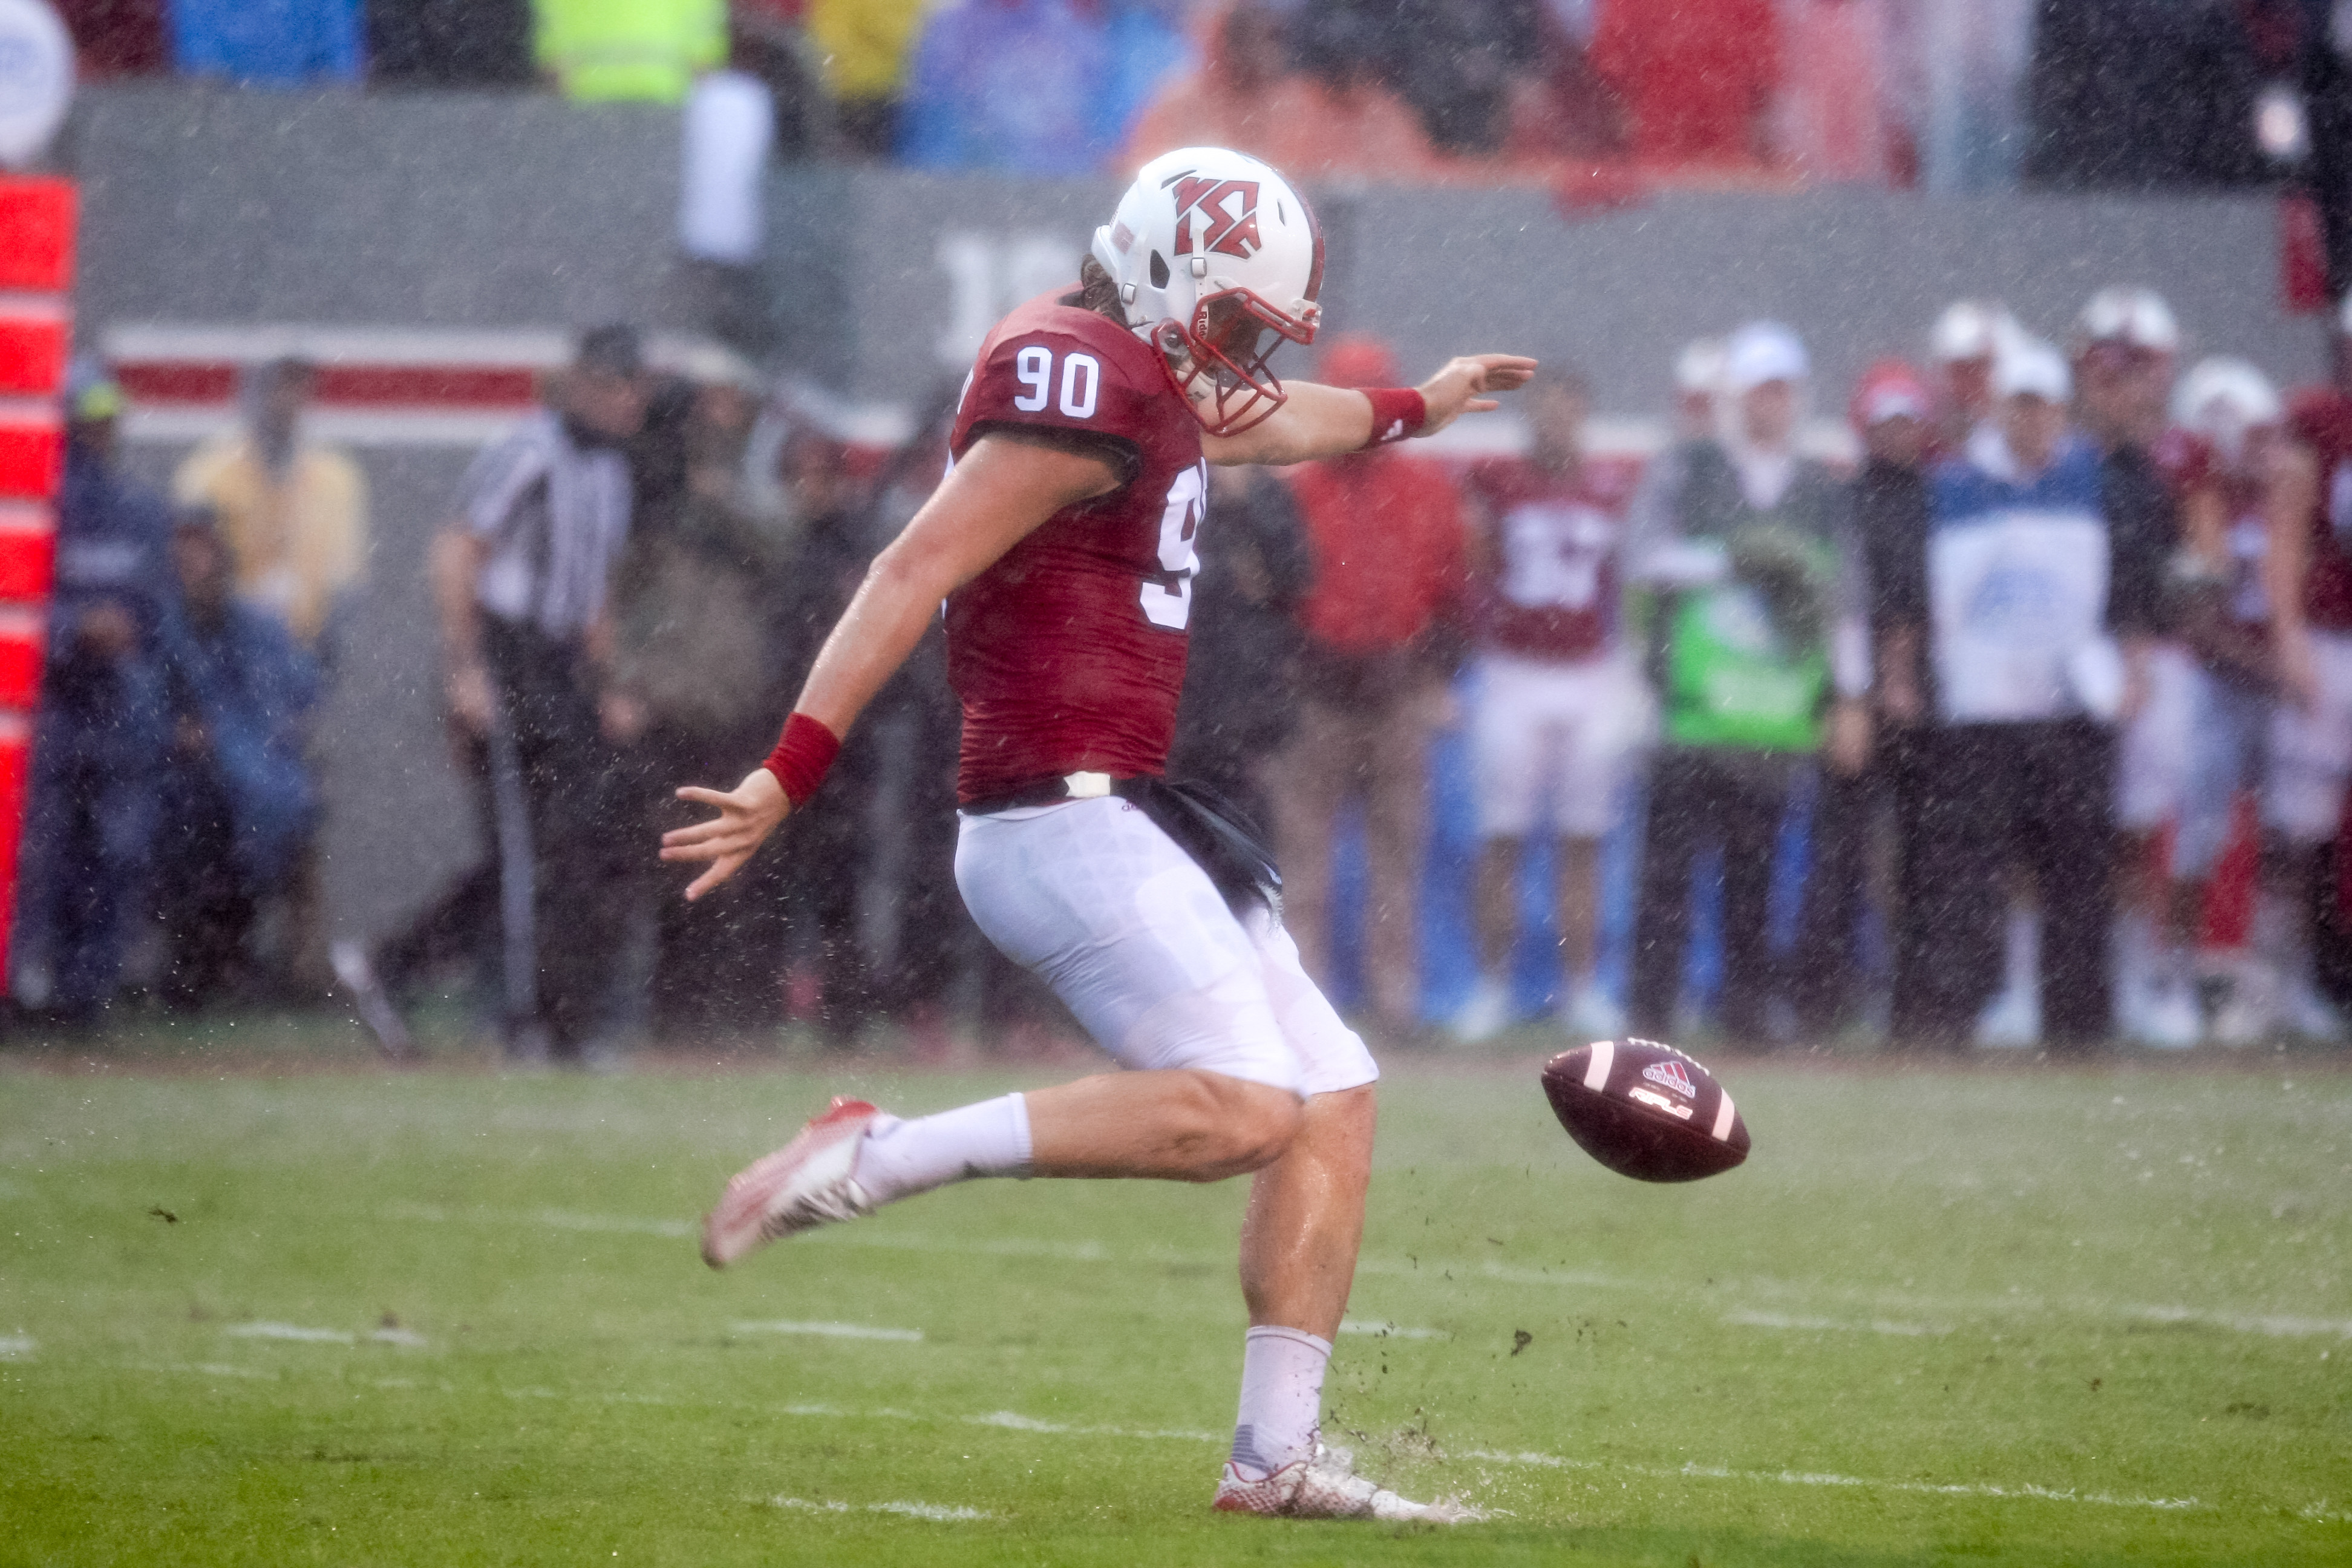 Cooke on preseason watch list for top punter